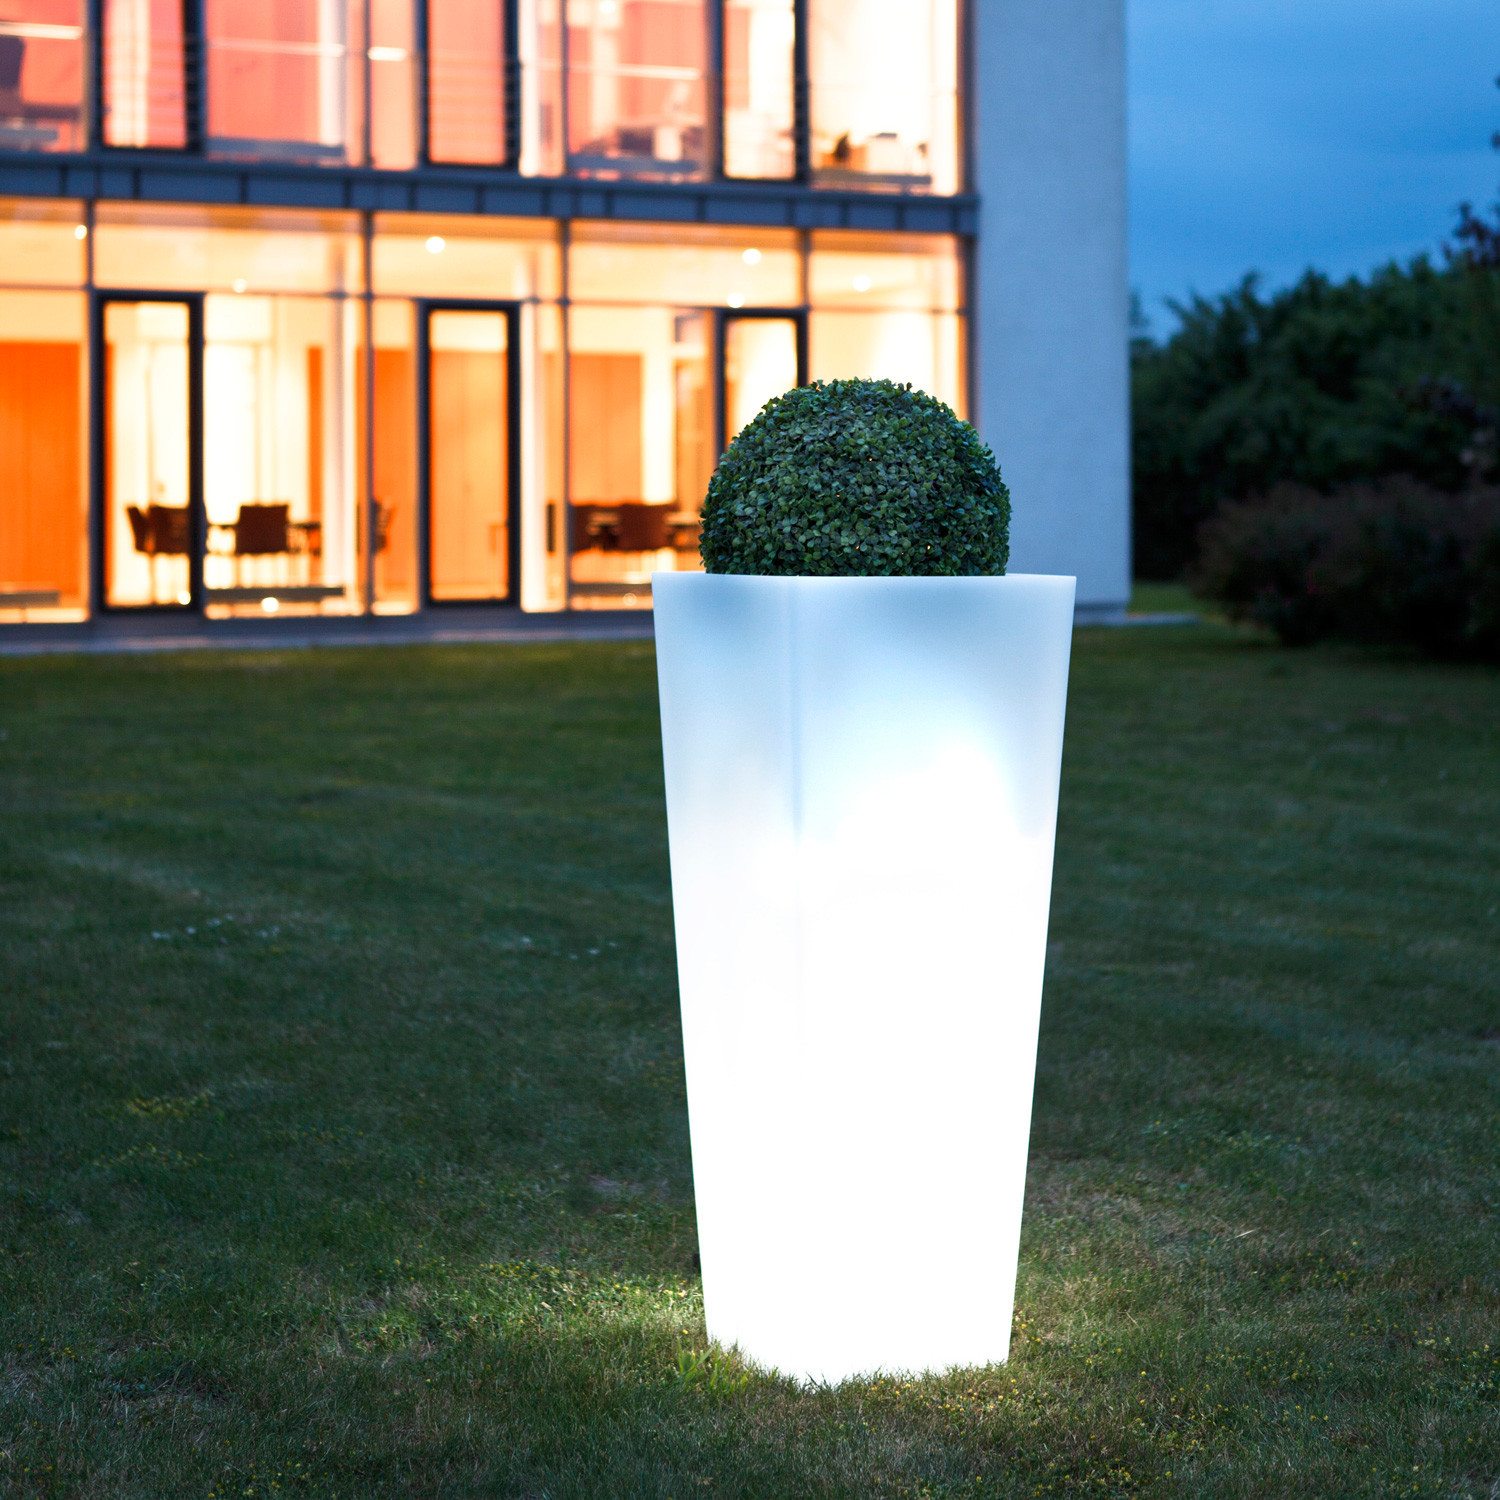 Quadro Light by Sophie Ruhland